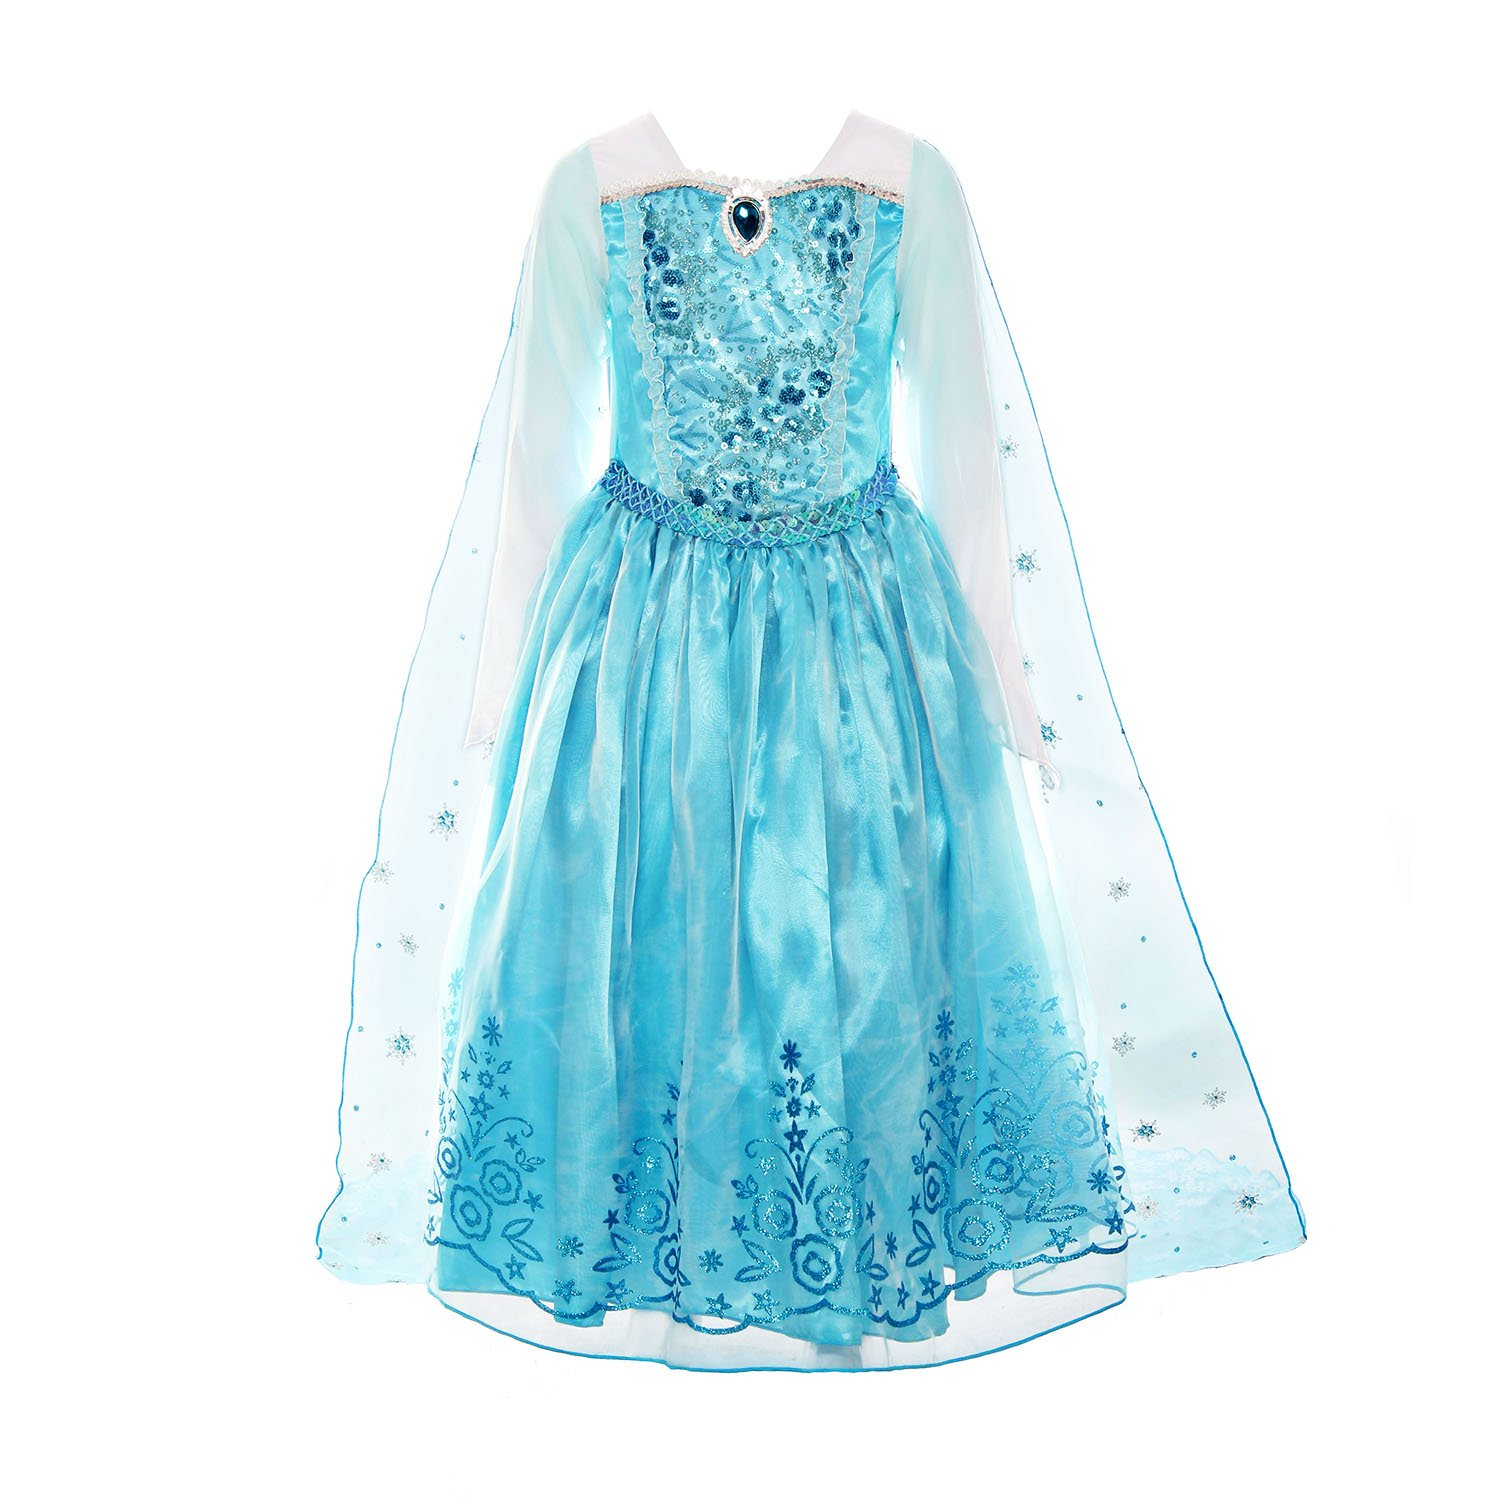 ReliBeauty Girls Sequin Princess Costume Long Sleeve Dress up, Light Blue, 4T by ReliBeauty (Image #1)